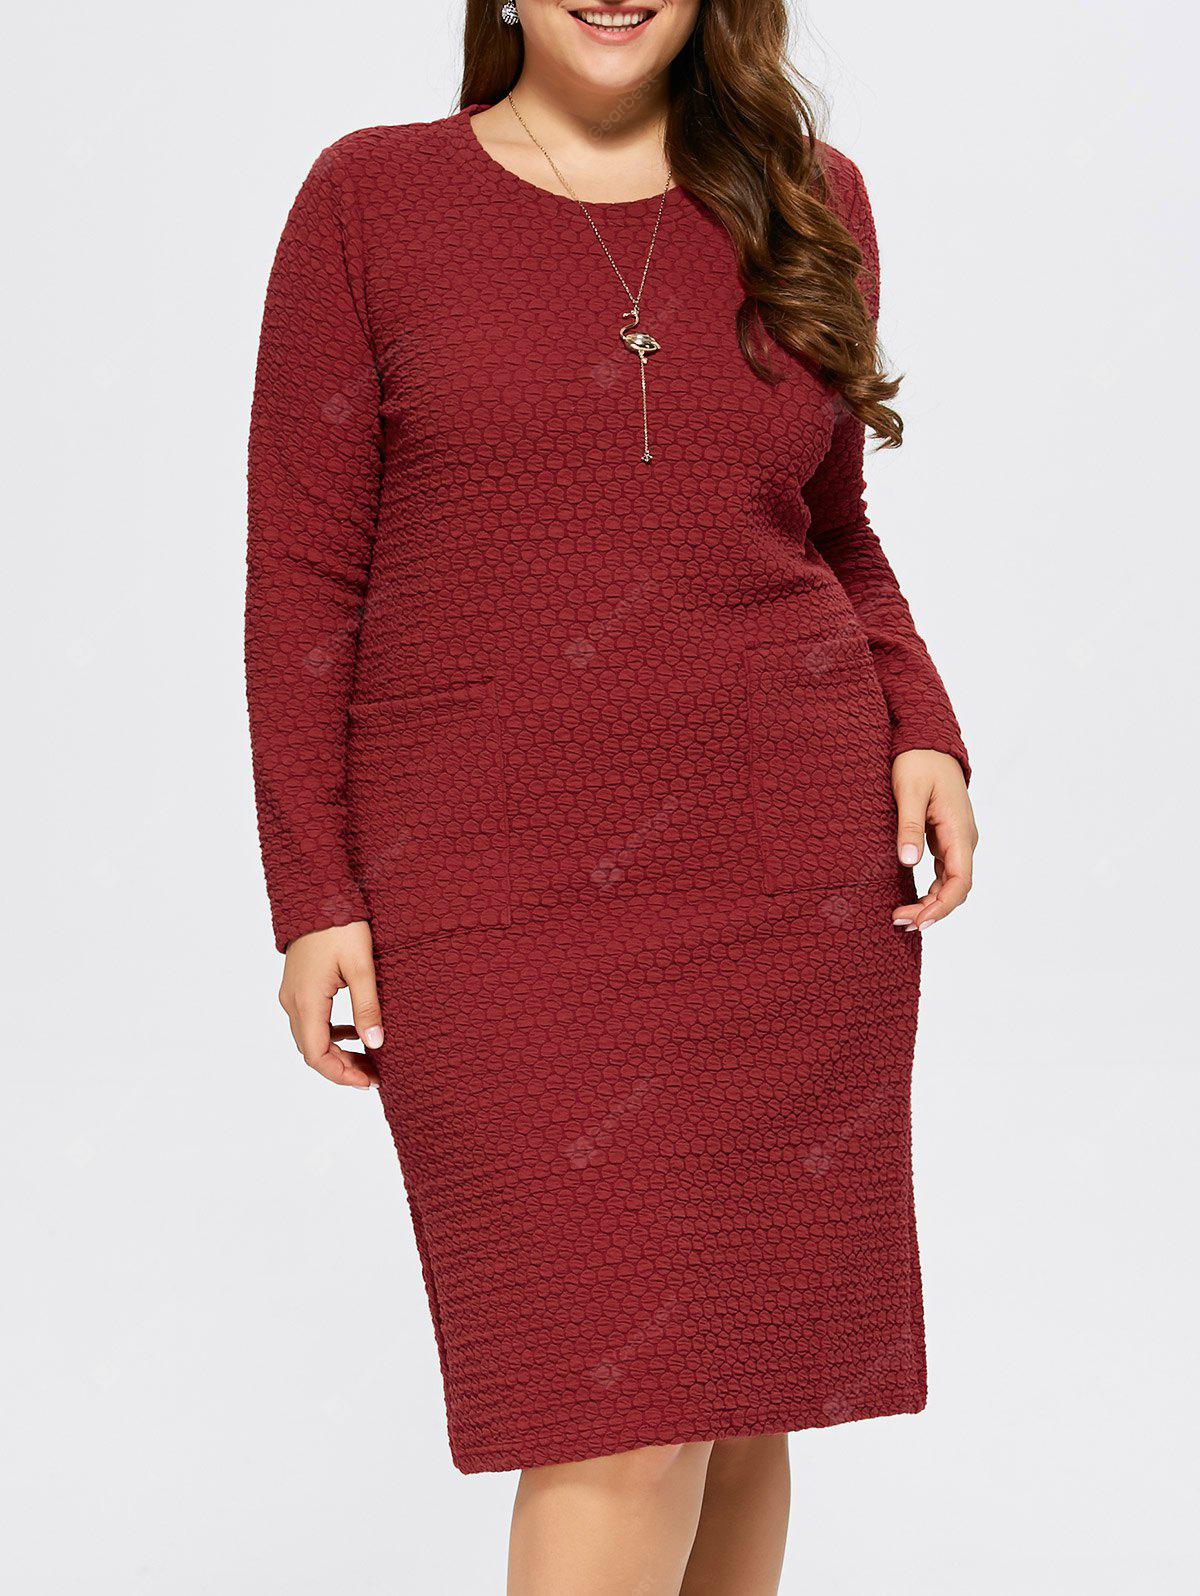 RED 4XL Plus Size Knee Length Shift Dress